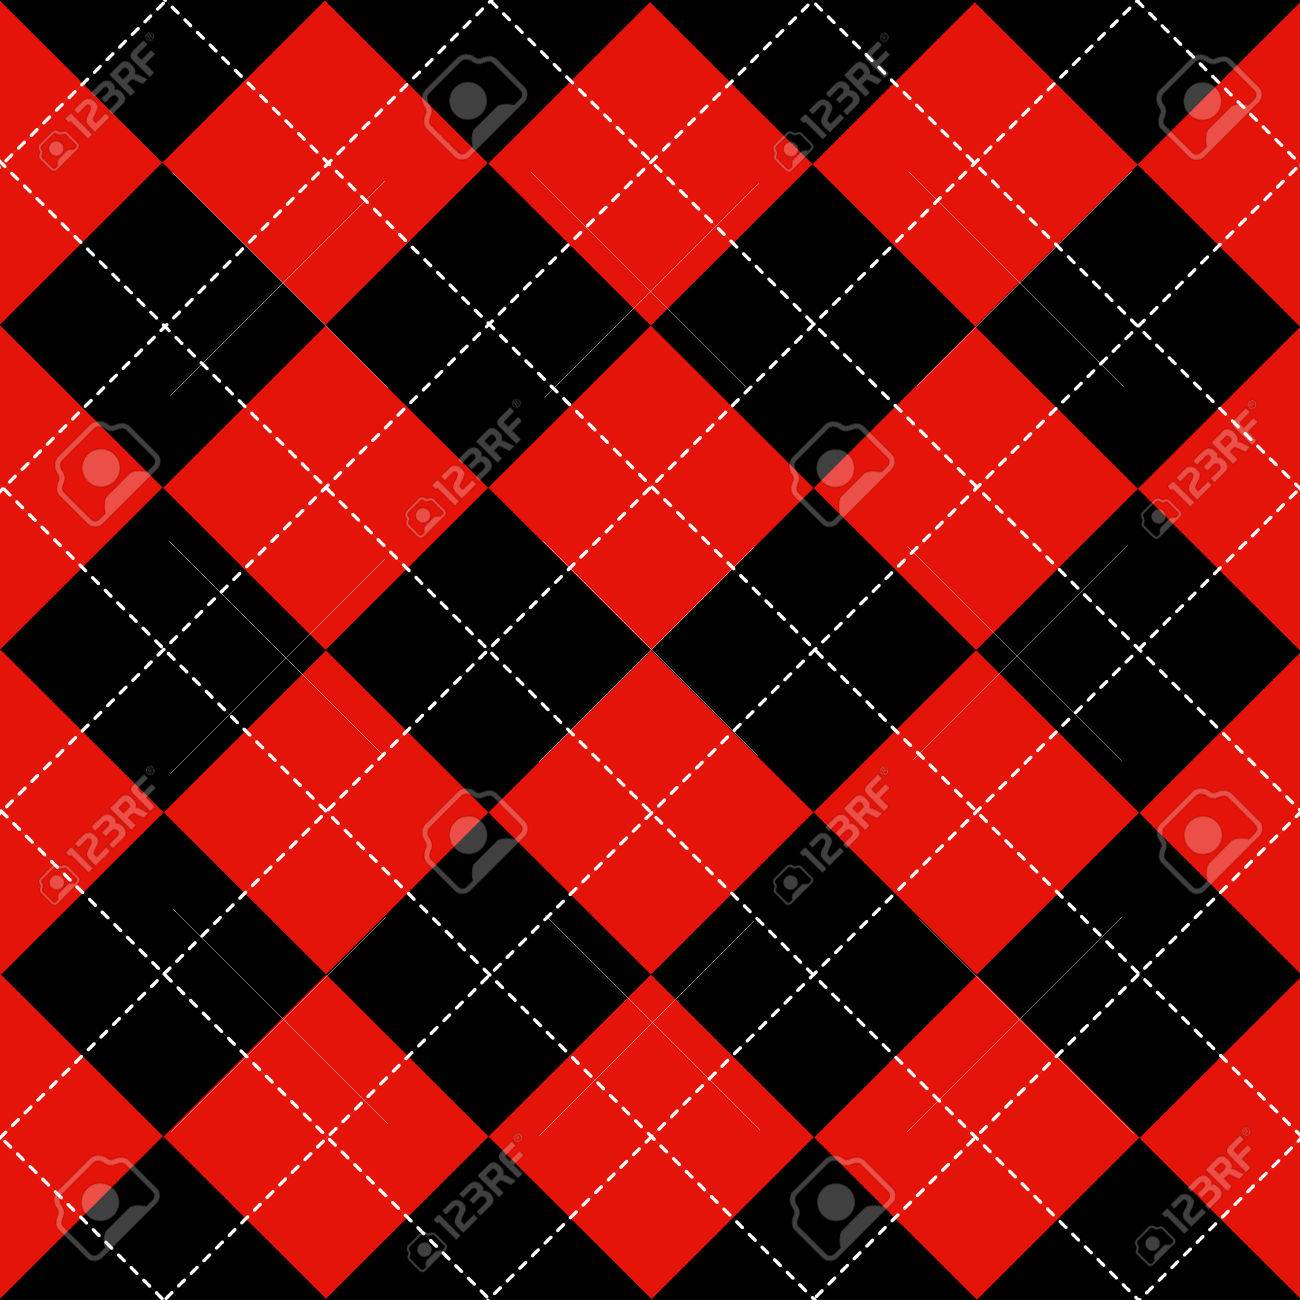 Red Black White Chess Board Diamond Background Vector Illustration